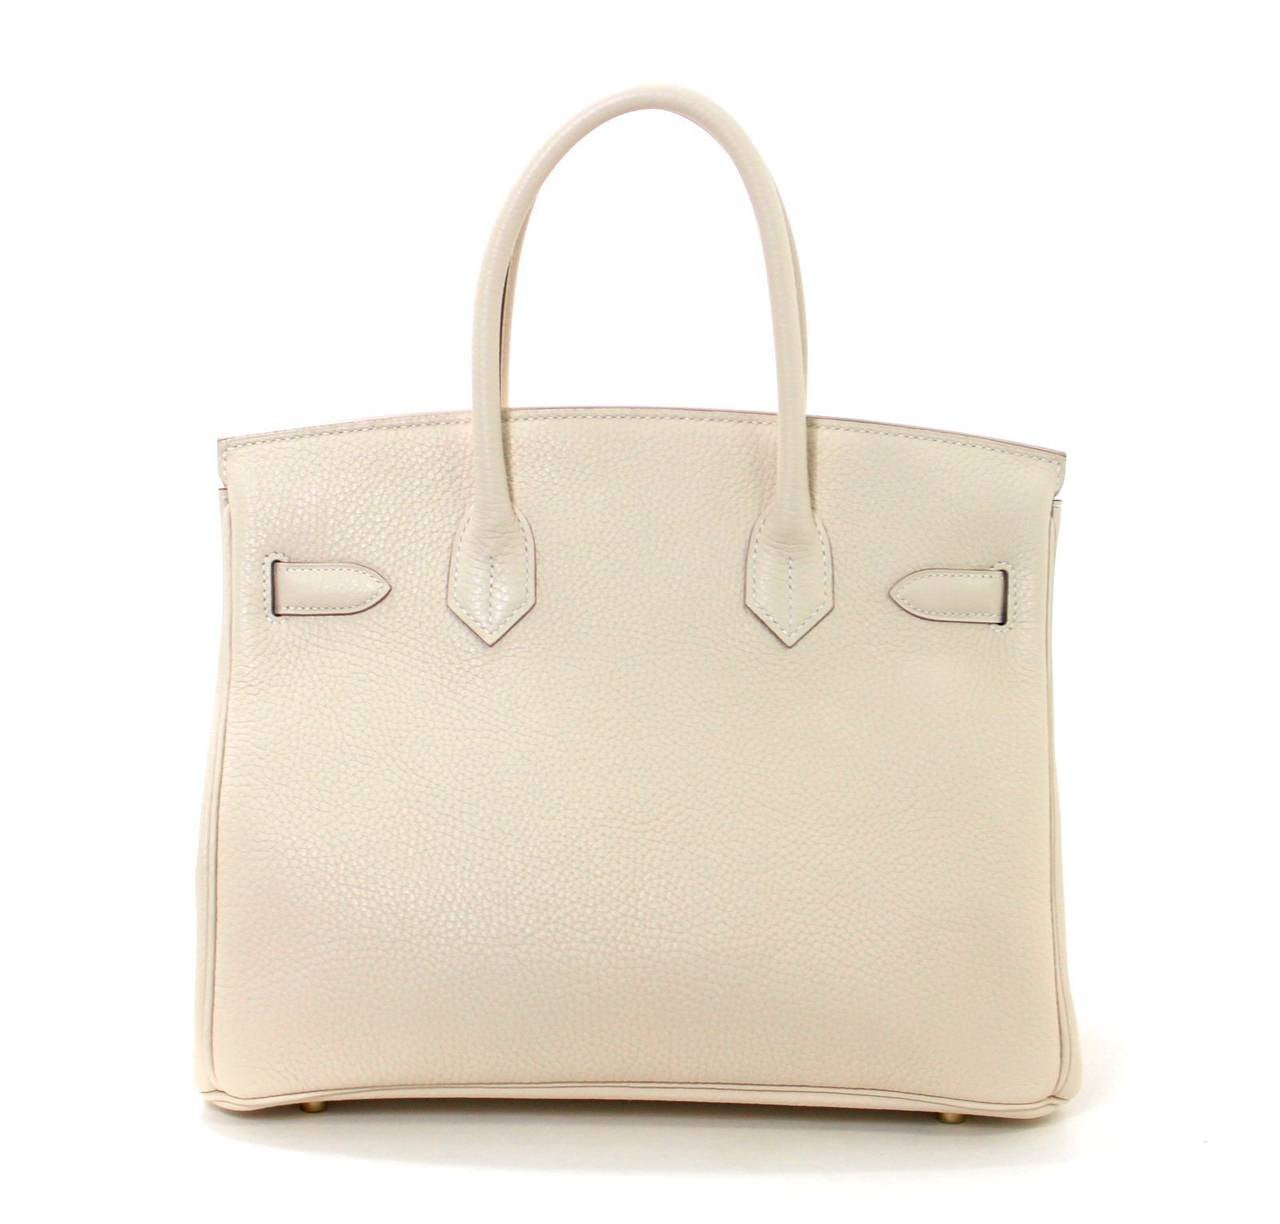 Hermes Birkin Bag in Craie Clemence with Gold- Bone color 30 cm 2